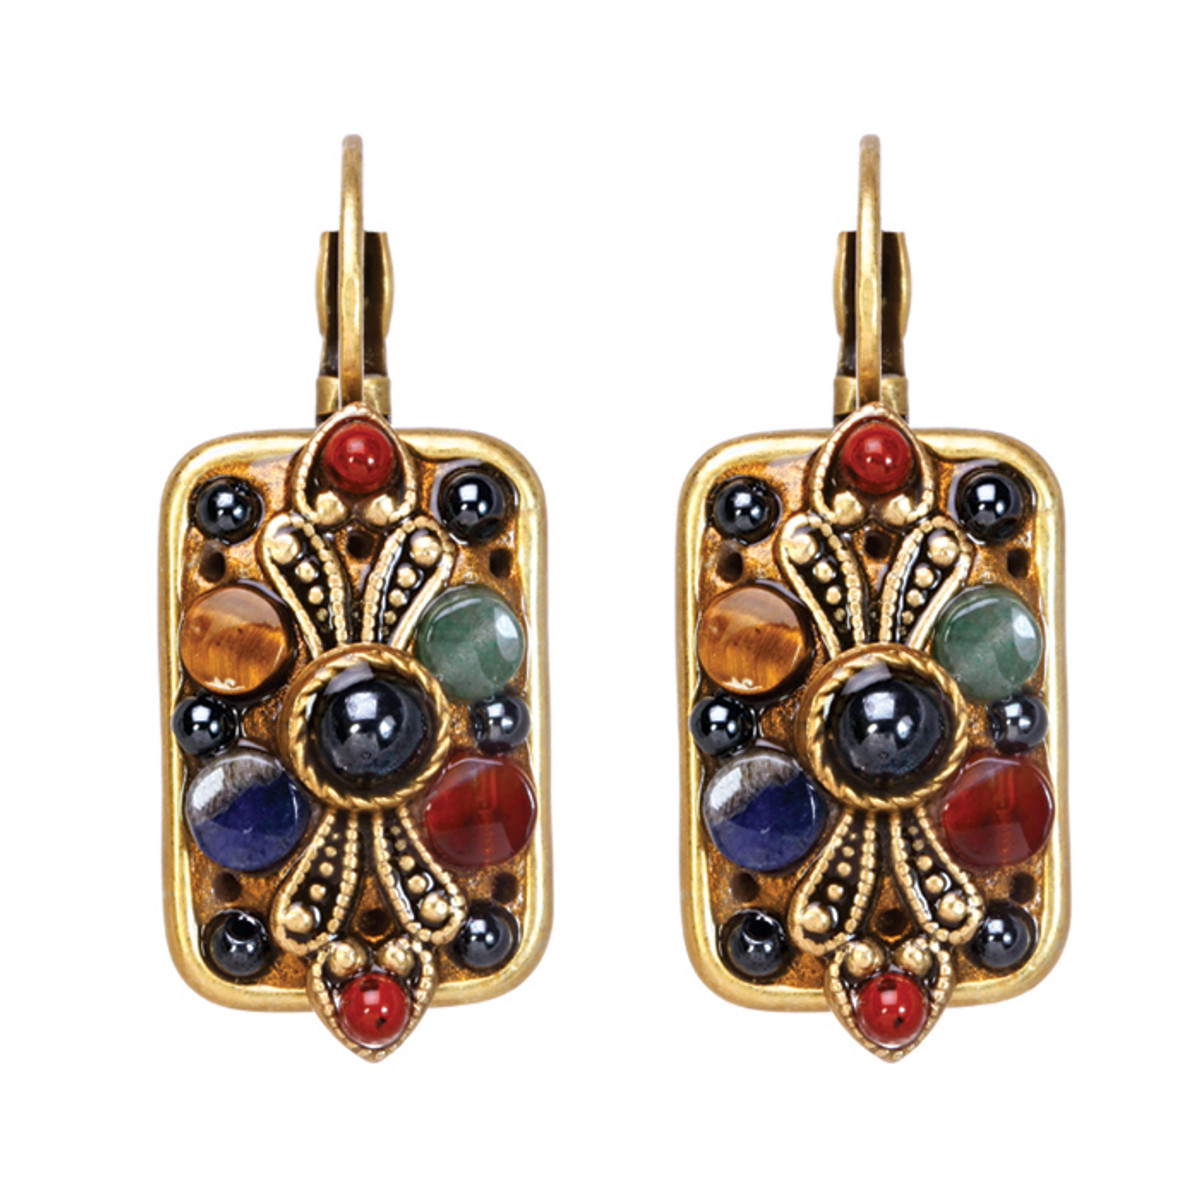 Michal Golan Earrings - Durango Square European Wire